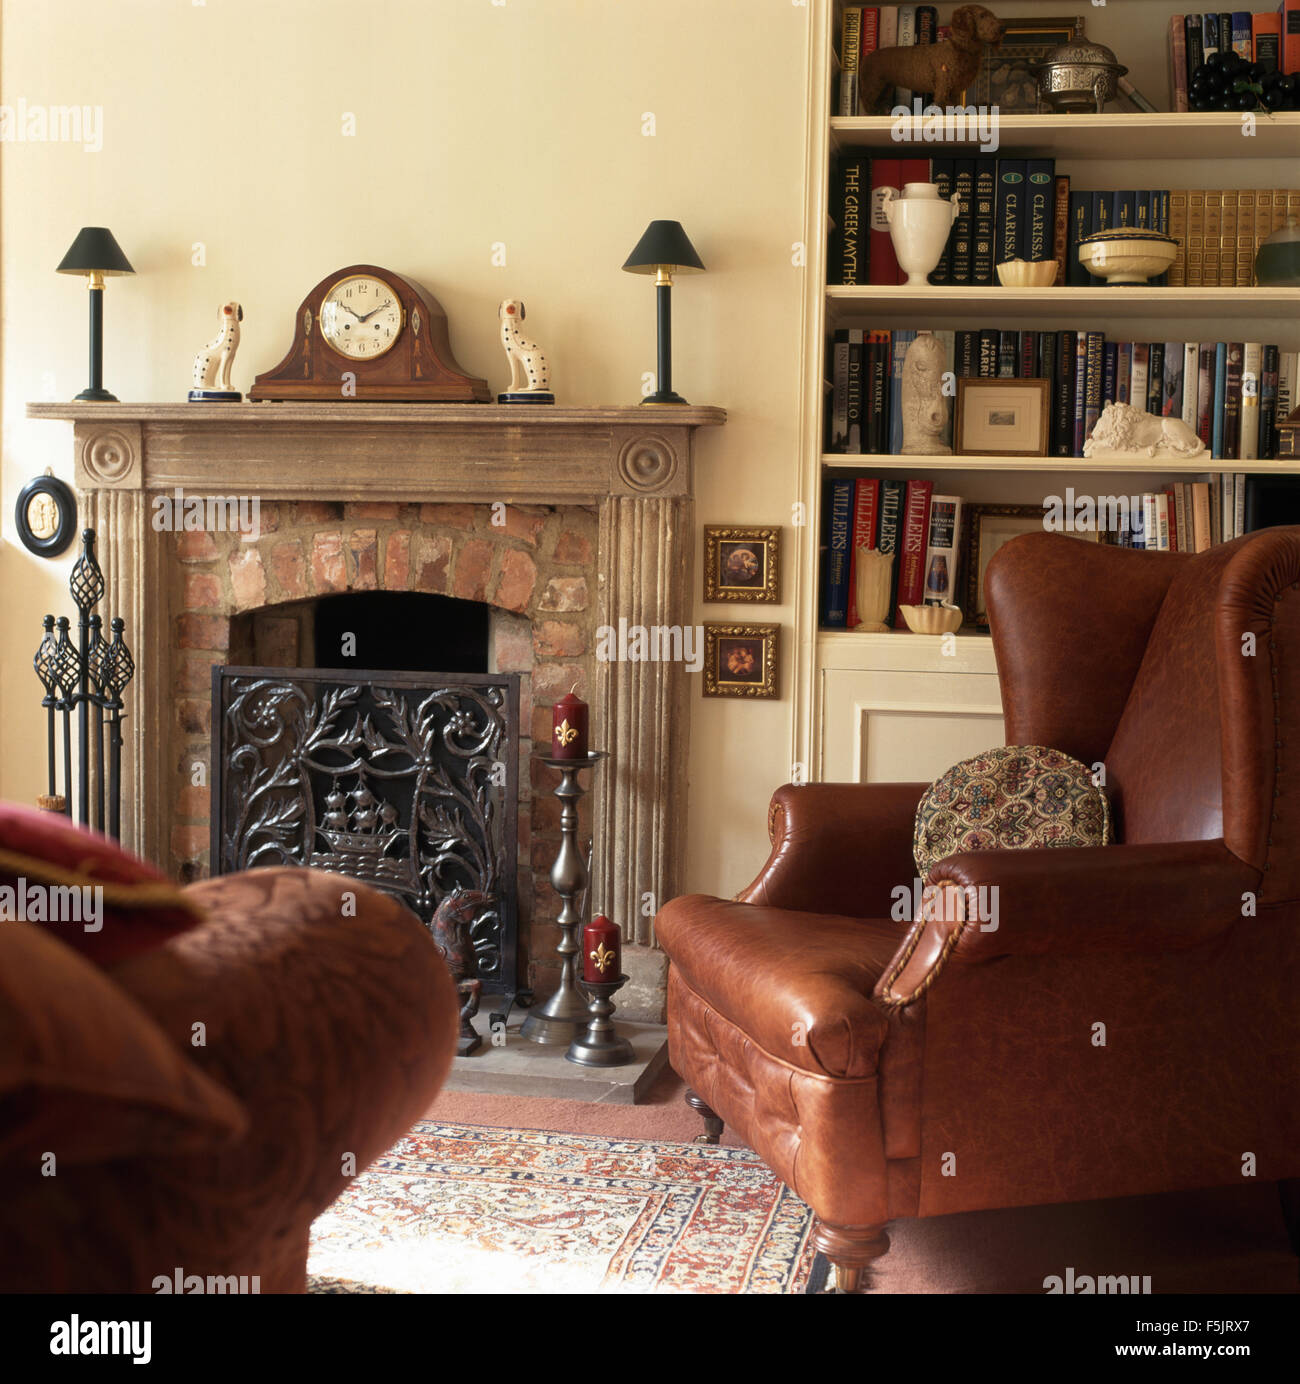 Brown Leather Wing Chair Beside Fireplace With An Ornate Cast Iron Screen  In A Nineties Living Room With Fitted Bookshelves